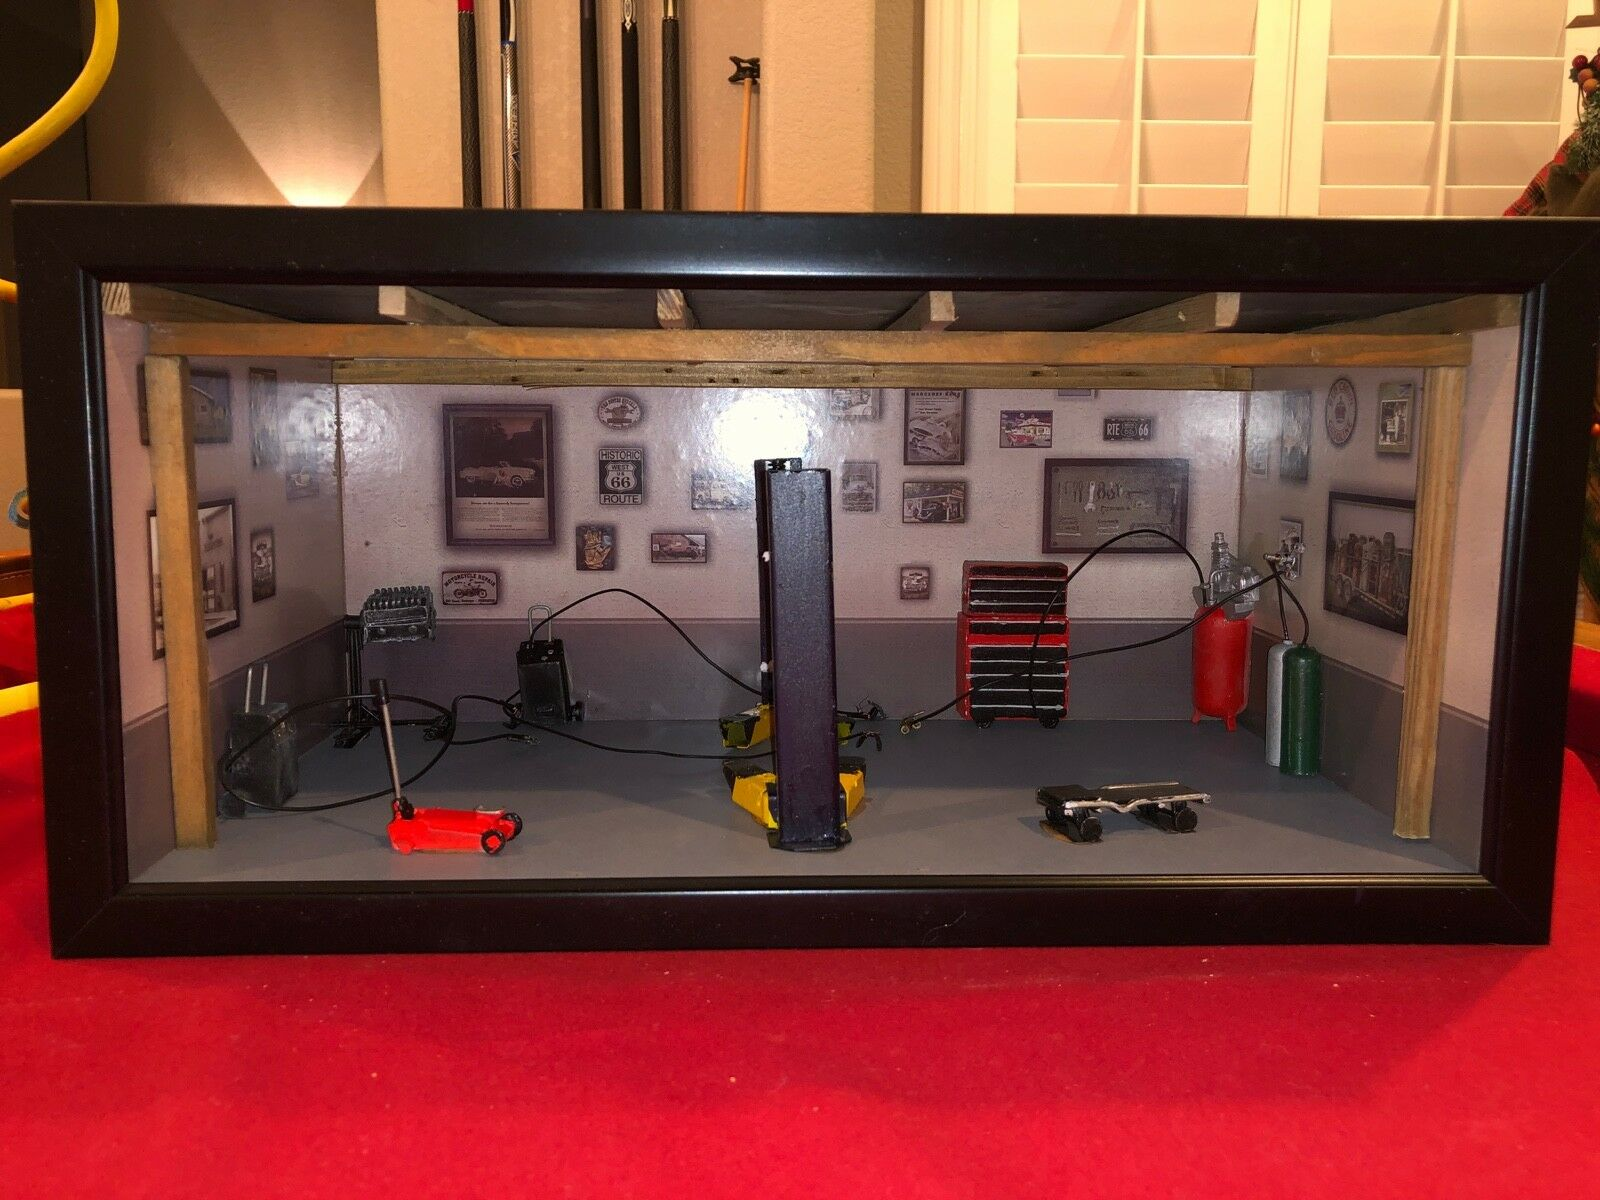 MUSCLE CAR GARAGE DIORAMA, DETAILED, 1 18TH SCALE DISPLAY FOR YOUR CARS